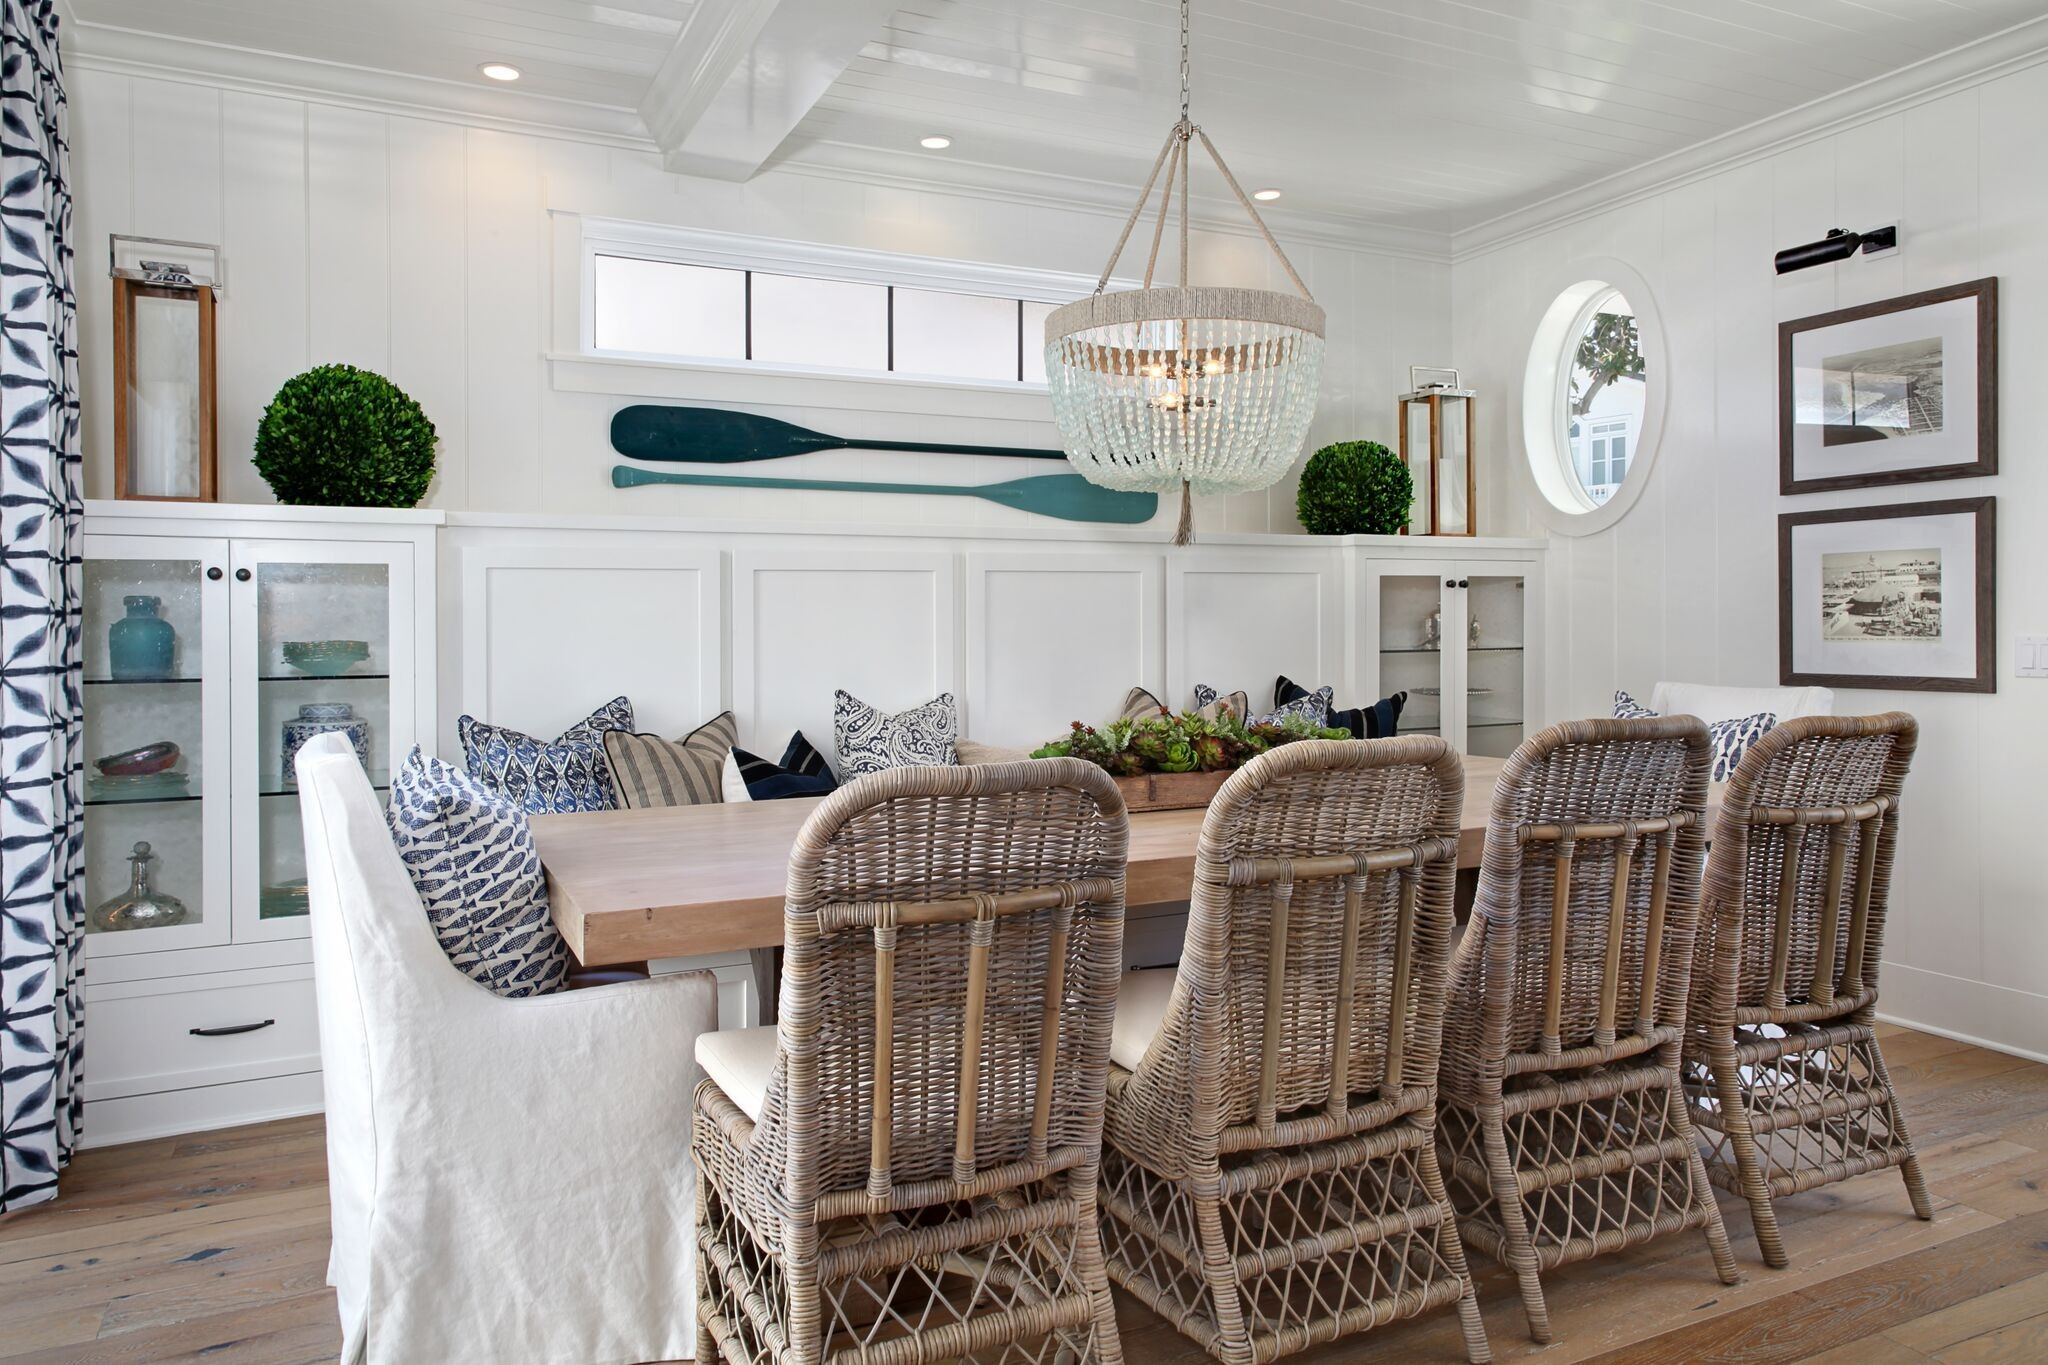 6 tips for decorating with coastal style year round - Coastal Design Ideas